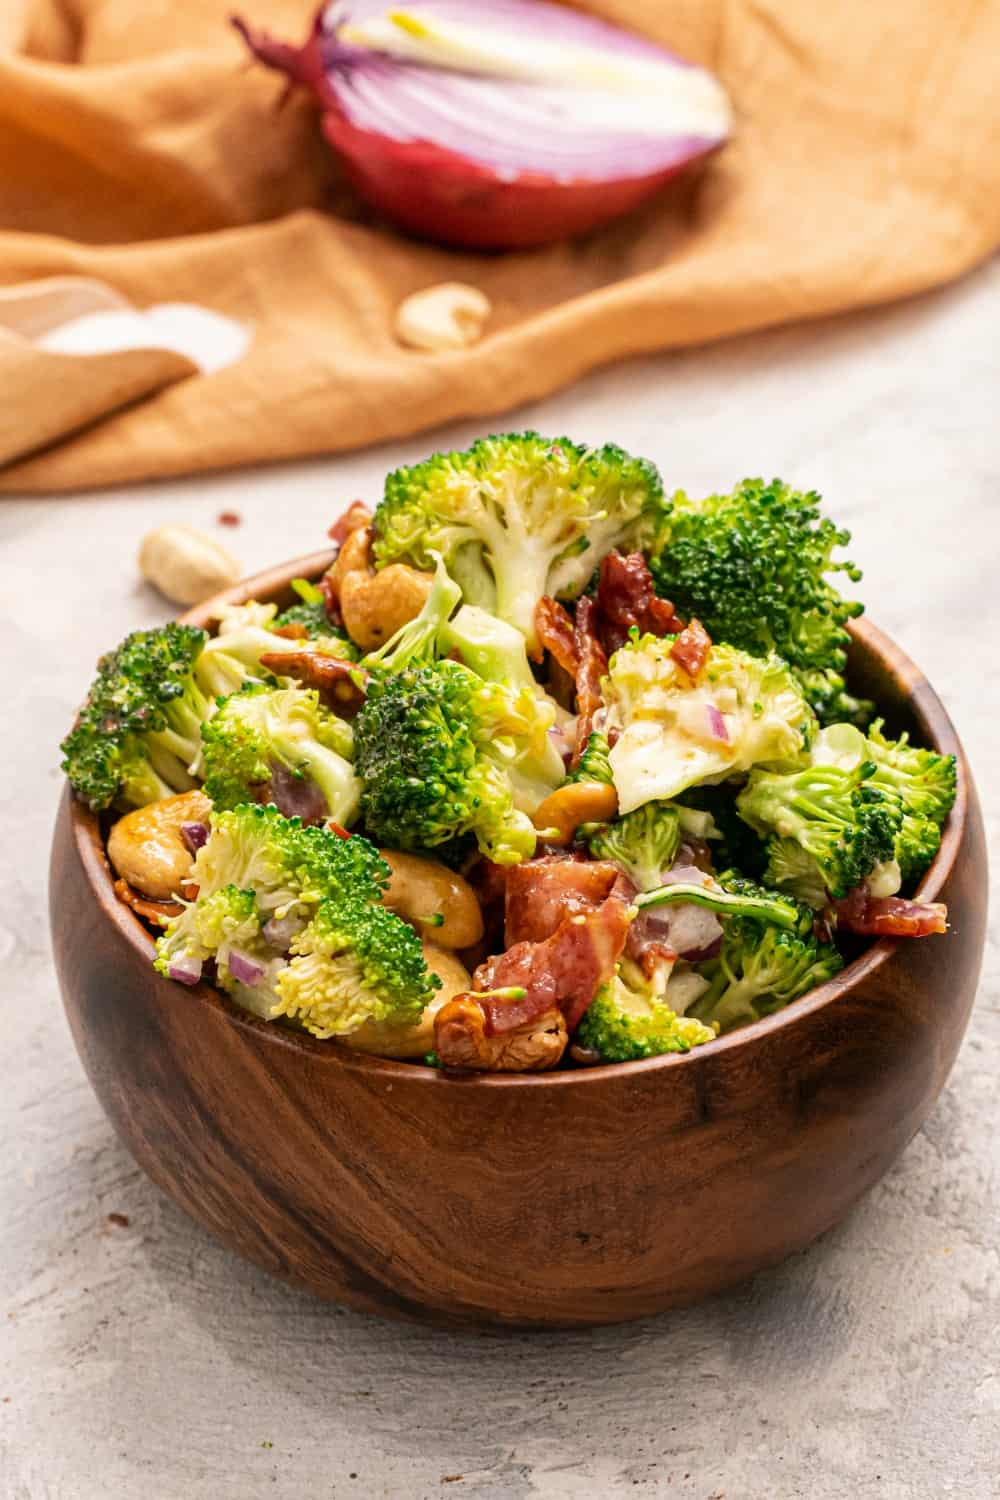 Cashew Broccoli Salad in a wooden bowl.